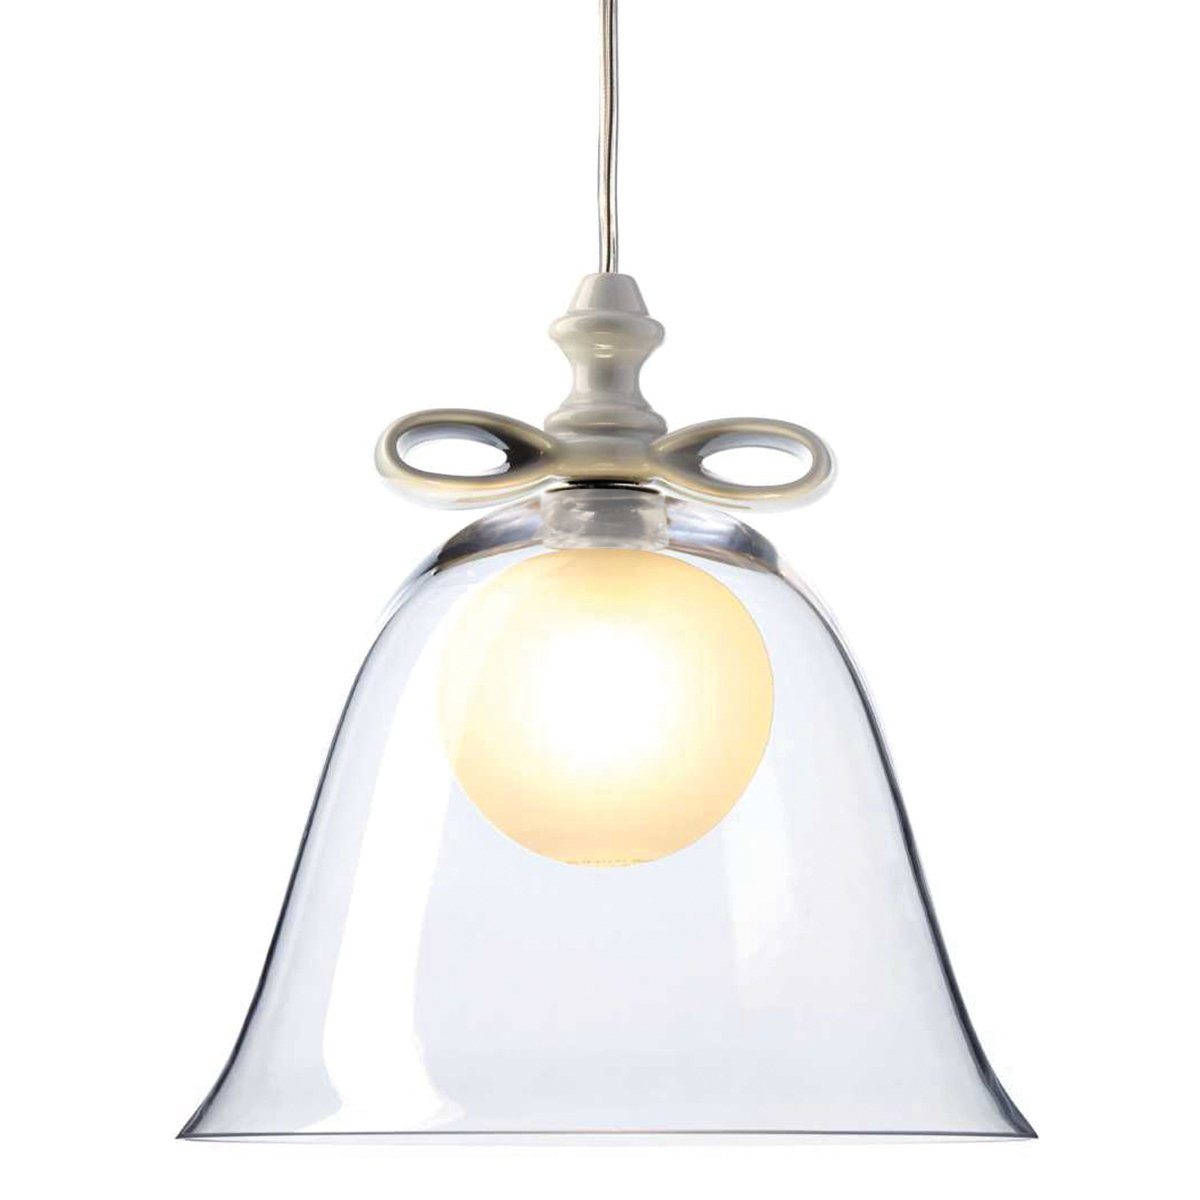 Moooi Bell Hanglamp - Transparant/Wit